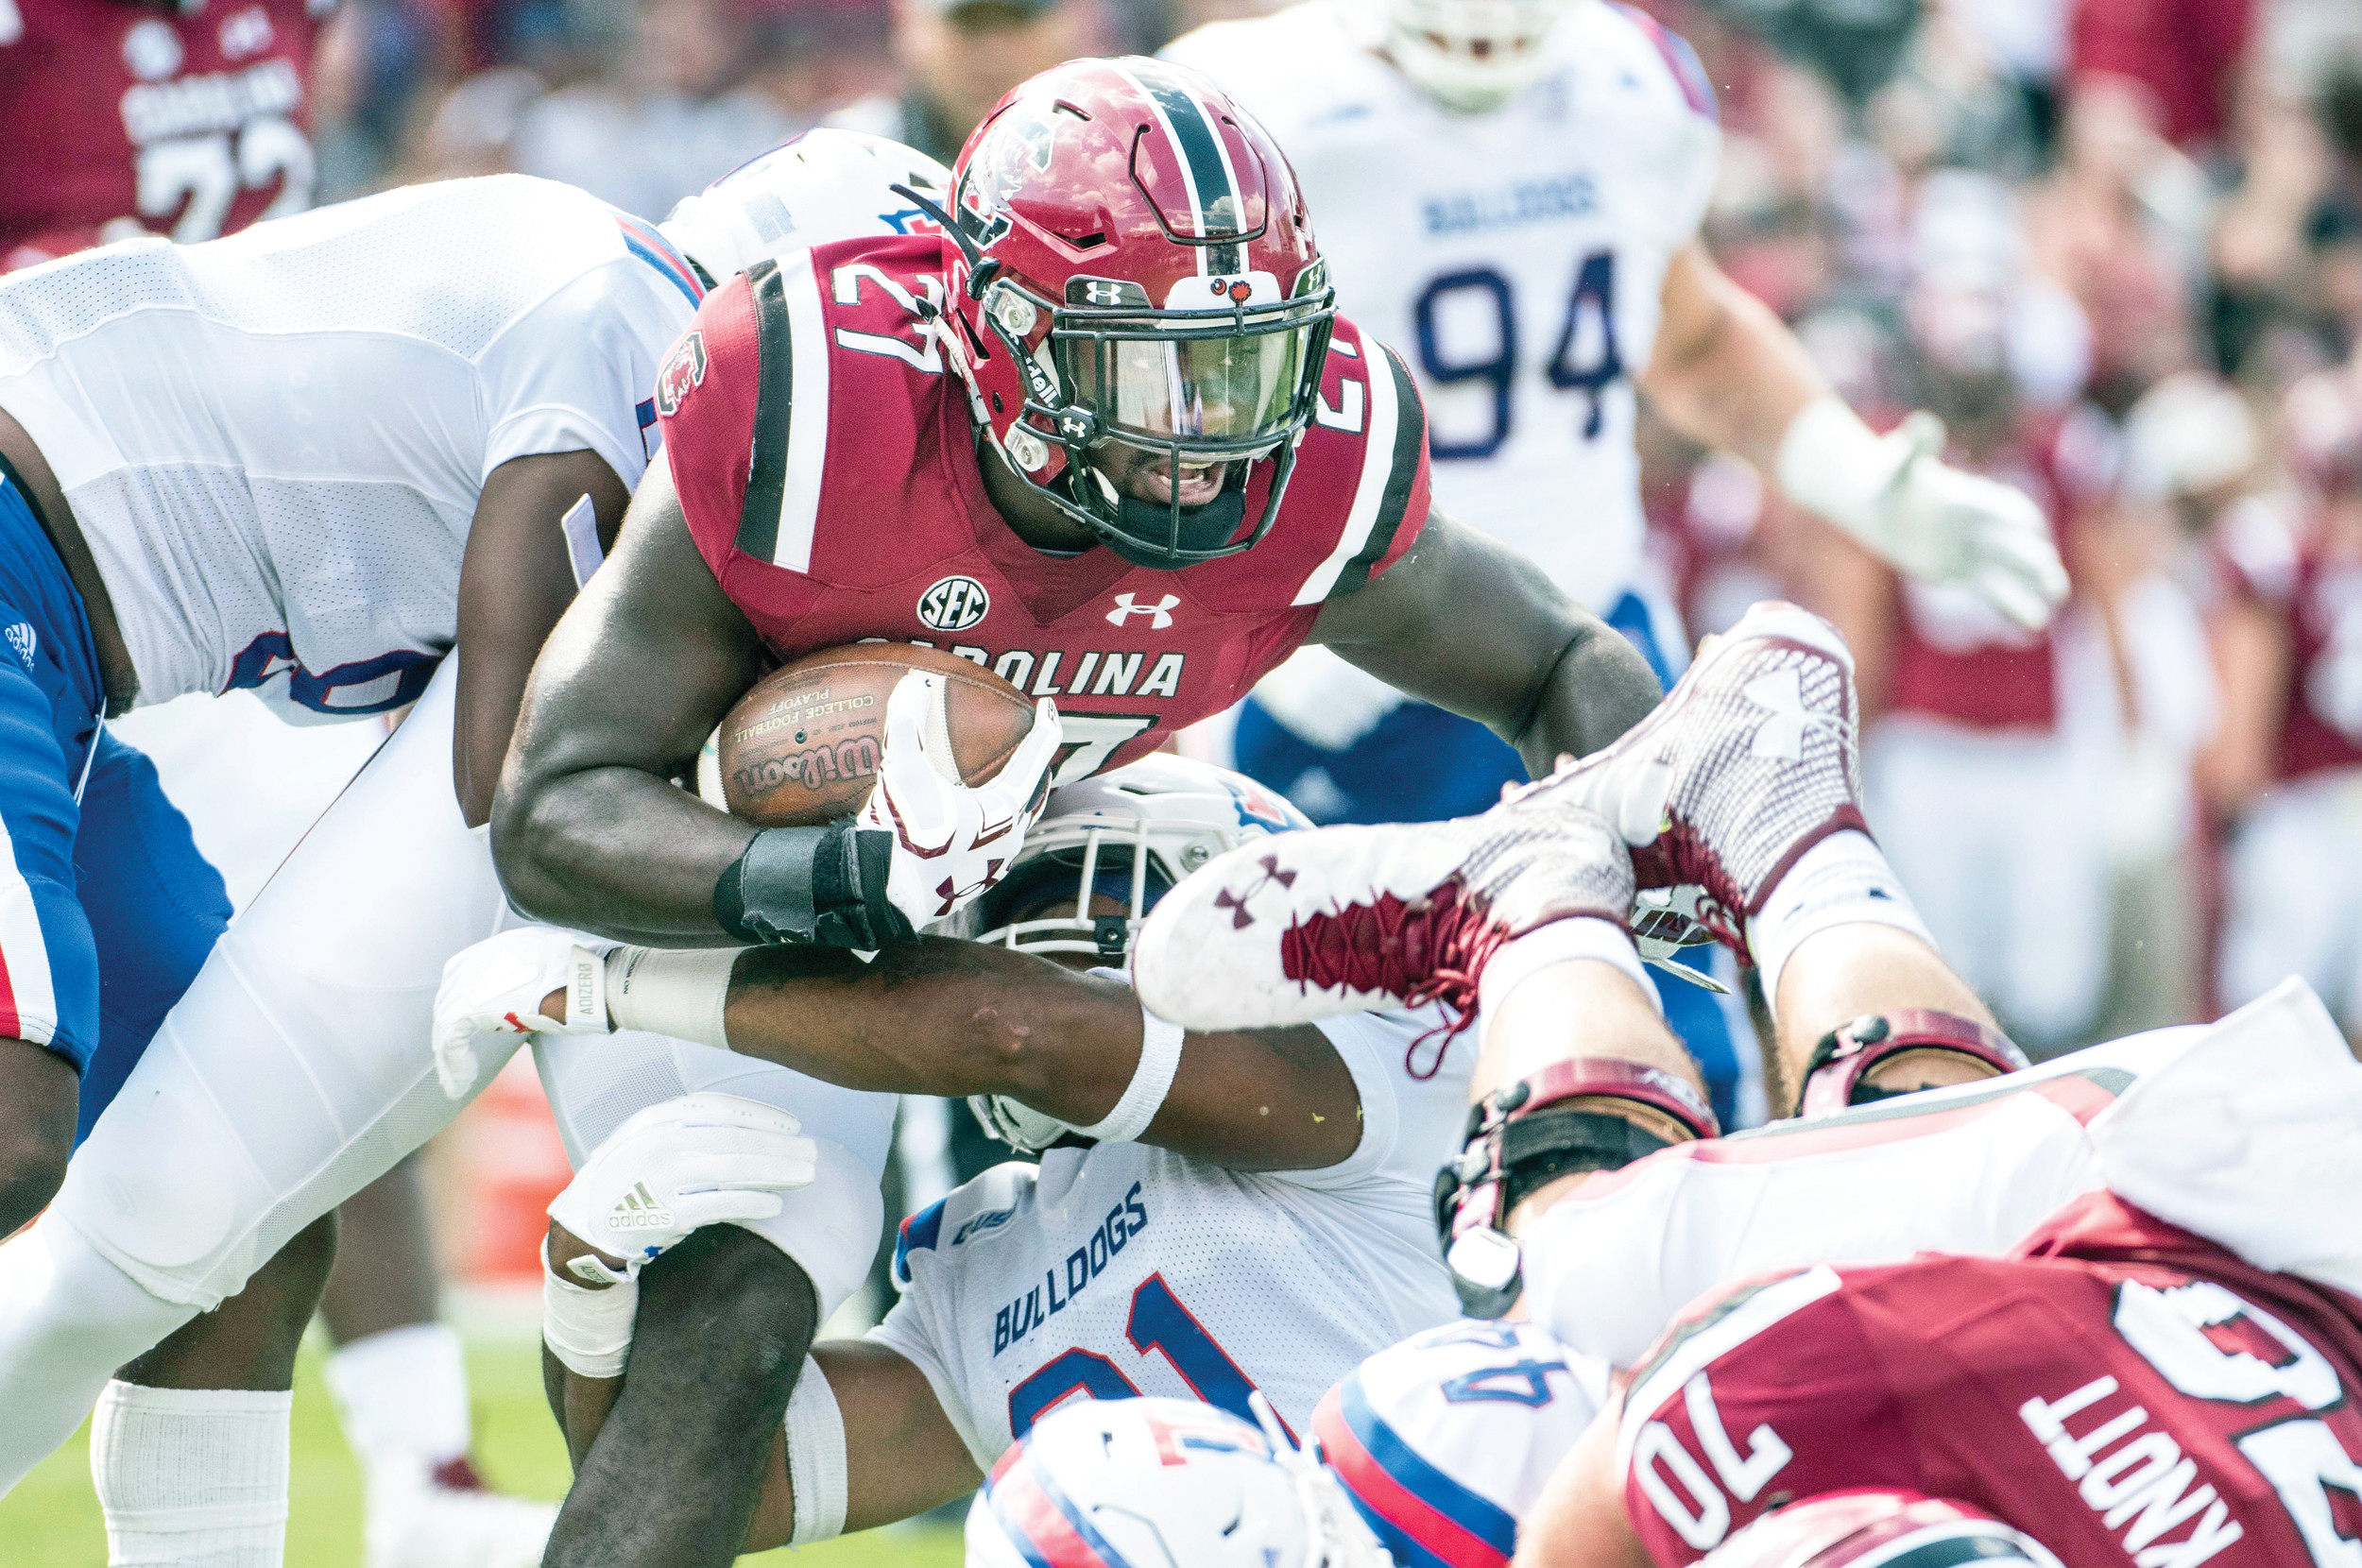 South Carolina's late field goal tops Louisiana Tech, 17-16